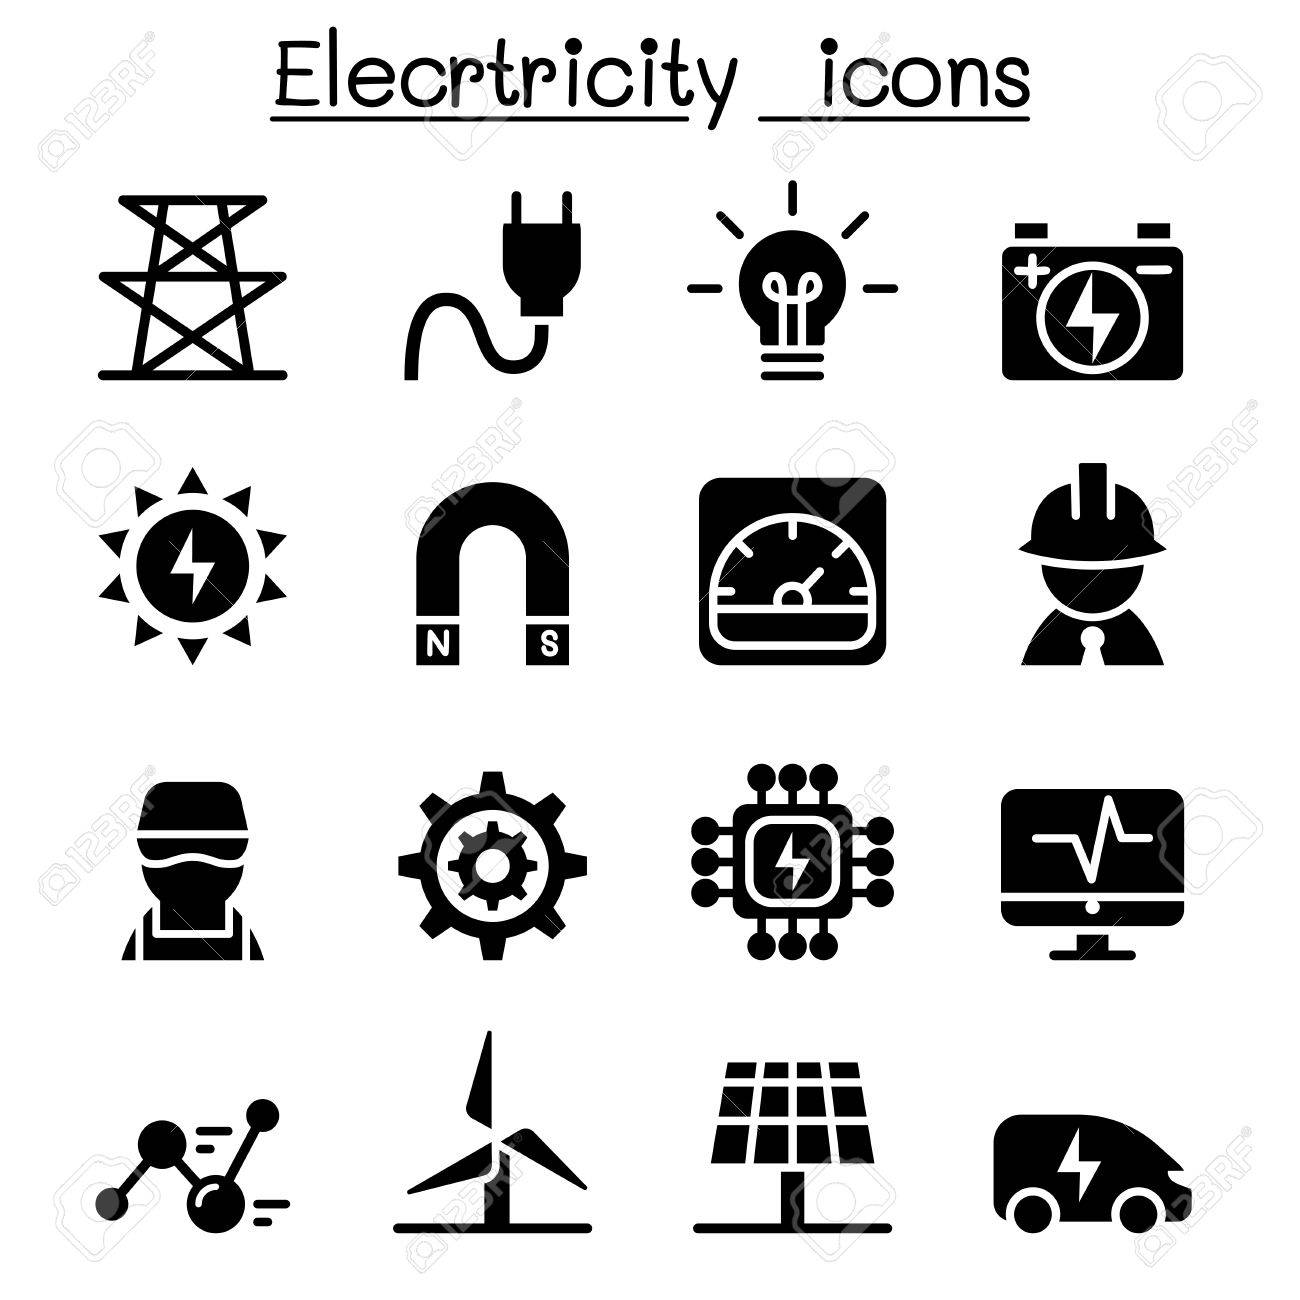 Electricity Industrial Icons With Equipment And Electrical